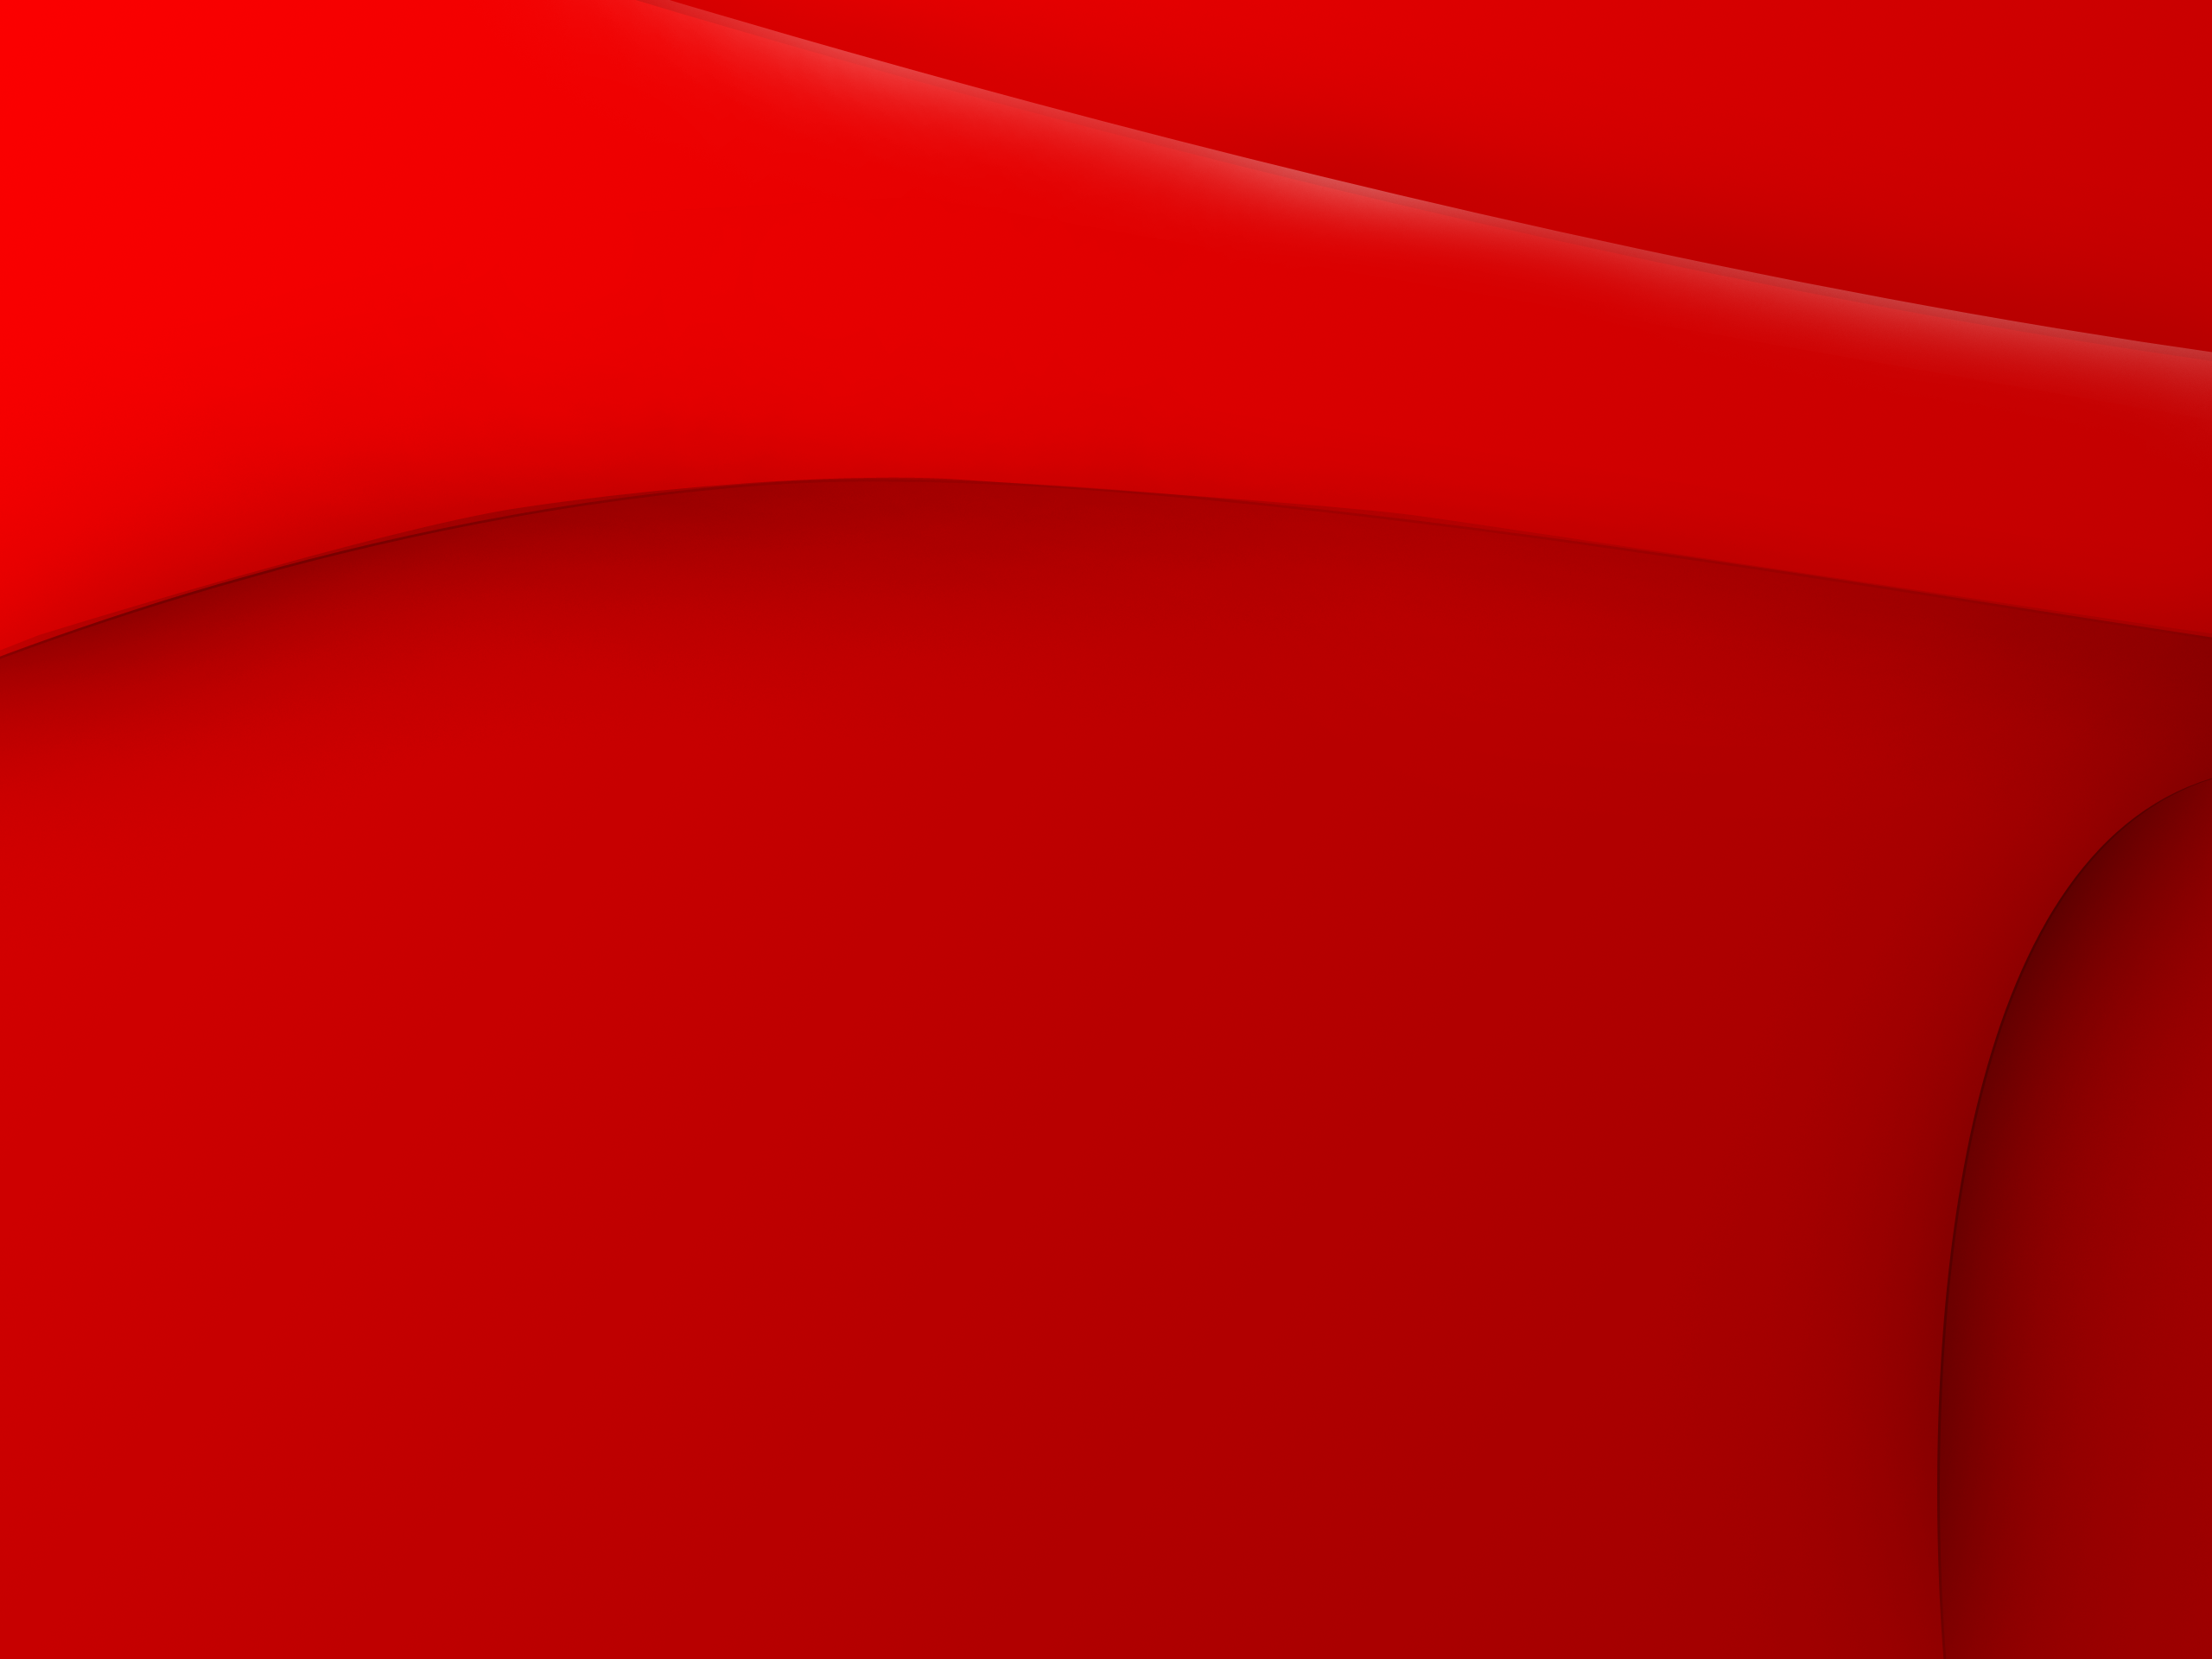 Image for Abstract Red Wallpaper HD 7003 Backgrounds | resources ... for Simple White And Red Wallpaper Designs  45ifm